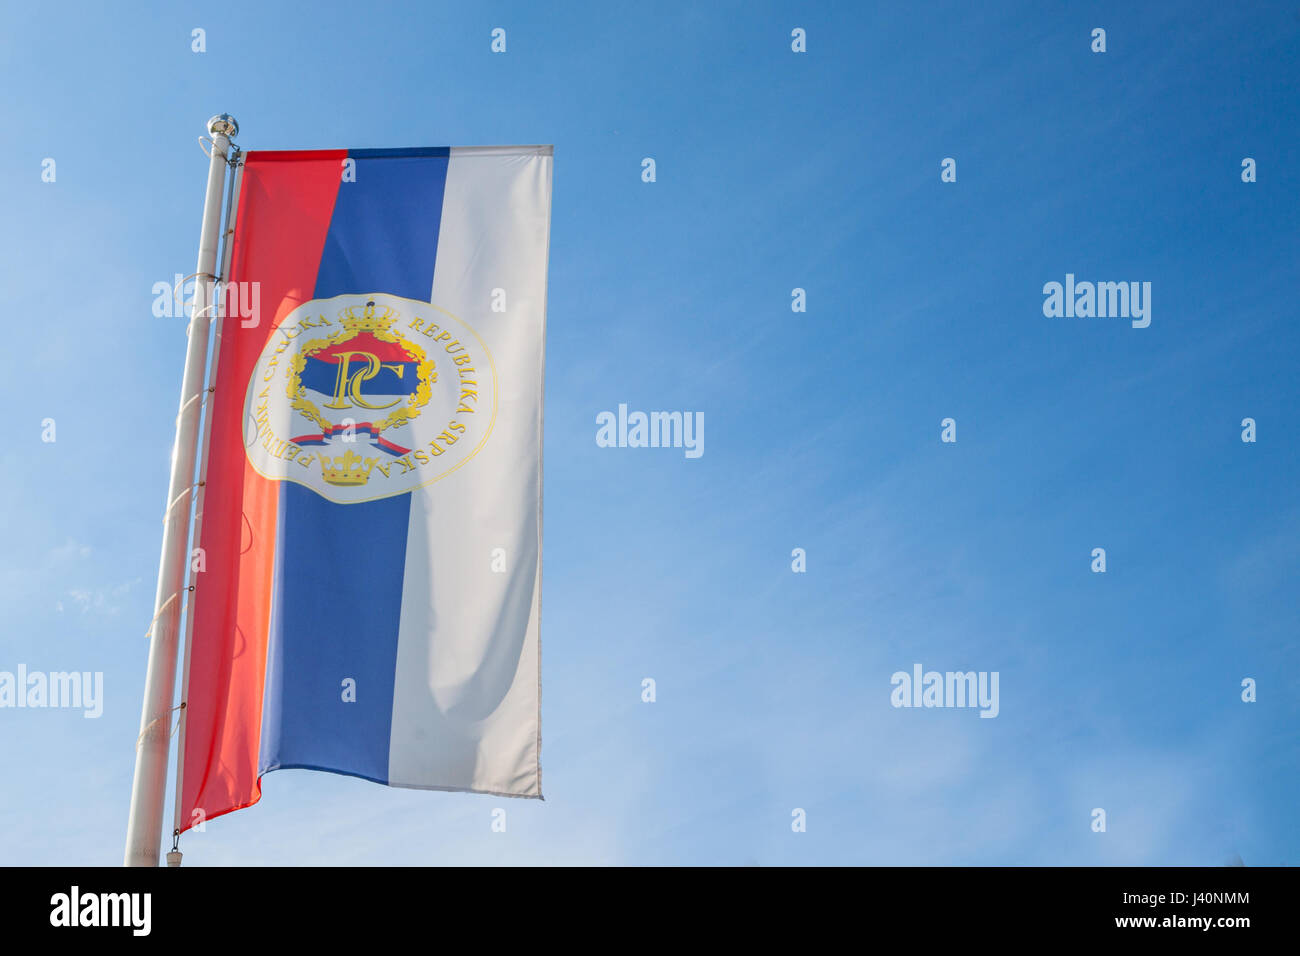 Flag of the Serb Republic of Bosnia (Republika Srpska) with its official coat of arms. The Republic of Srpska is - Stock Image